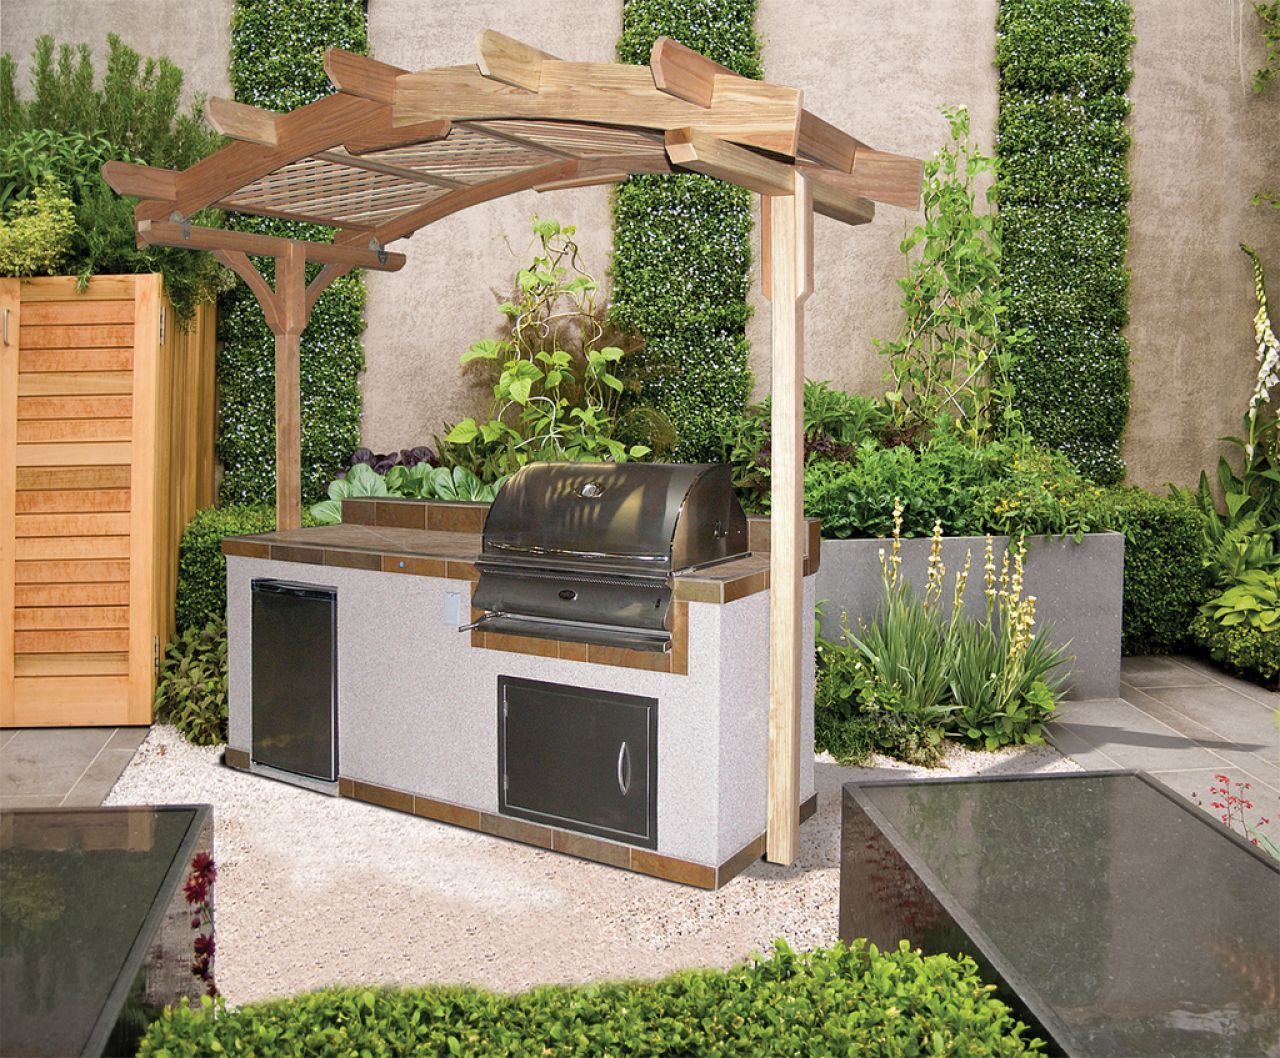 Odk simple out door kitchen pinterest yard ideas and doors